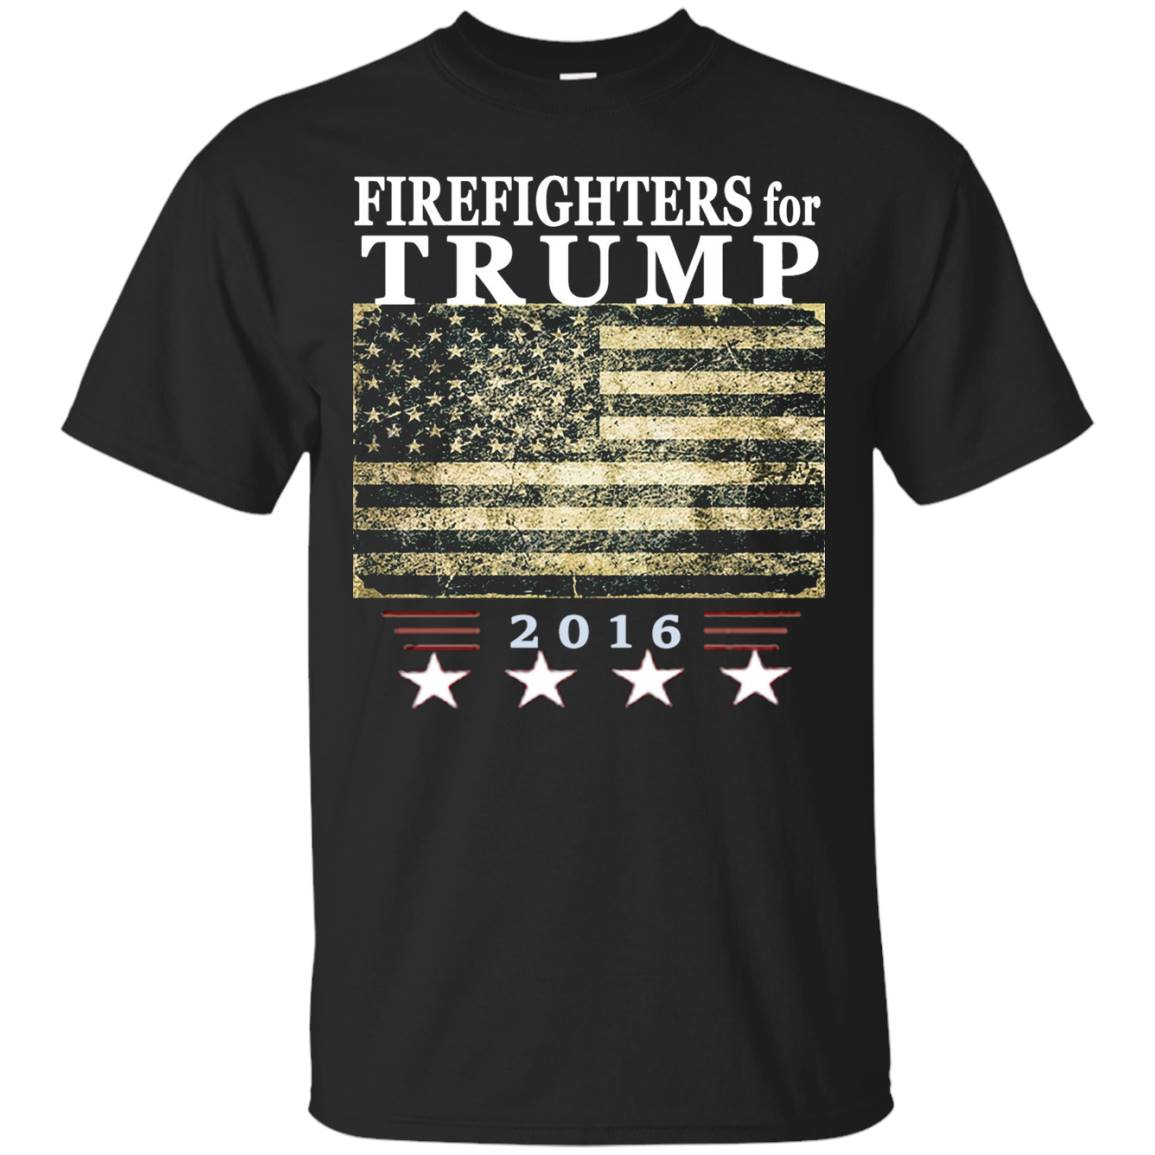 Firefighters Trump Shirt – Vintage style flag tee